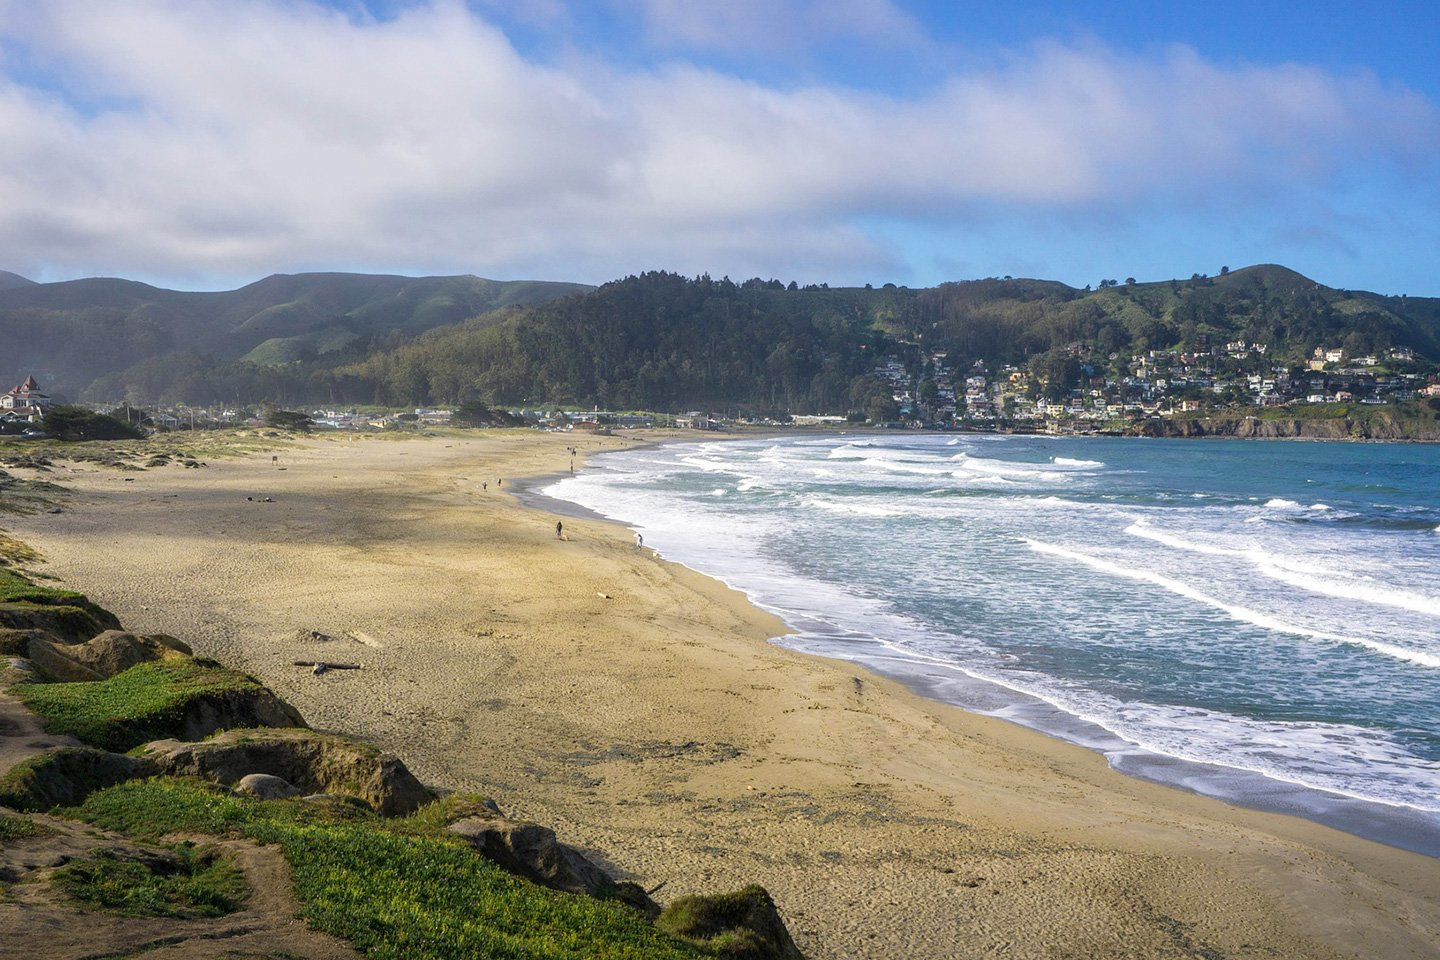 Dog friendly Pacifica State Beach